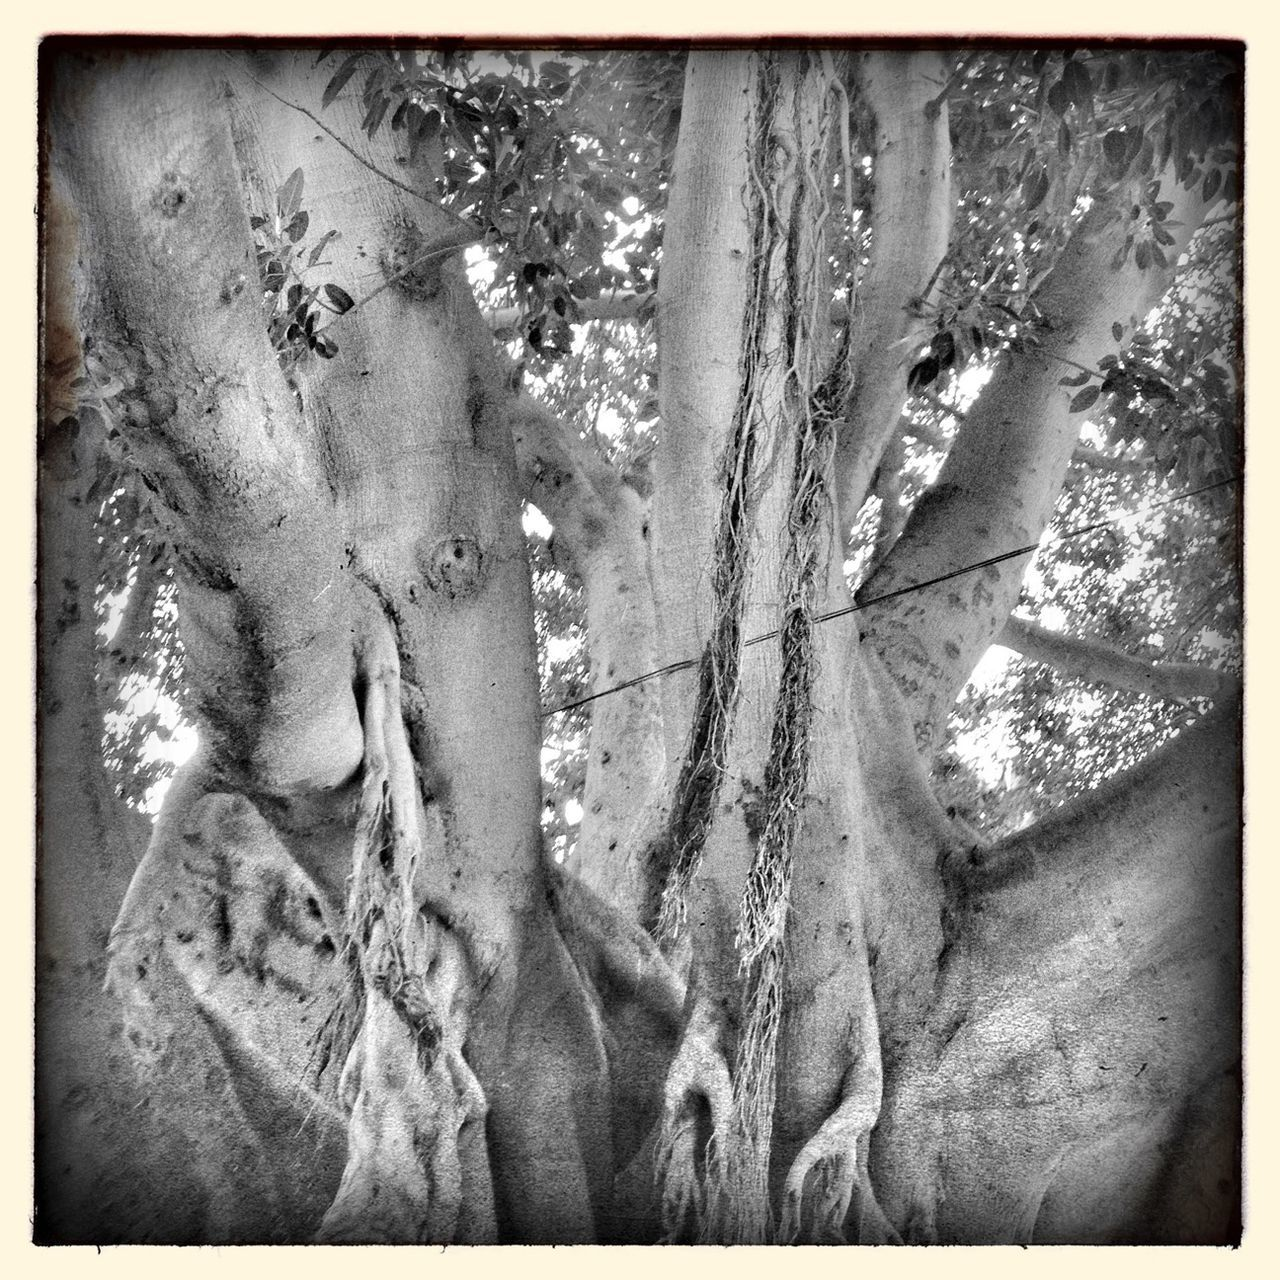 Streetphotography Hipstamatic Blackandwhite Tree